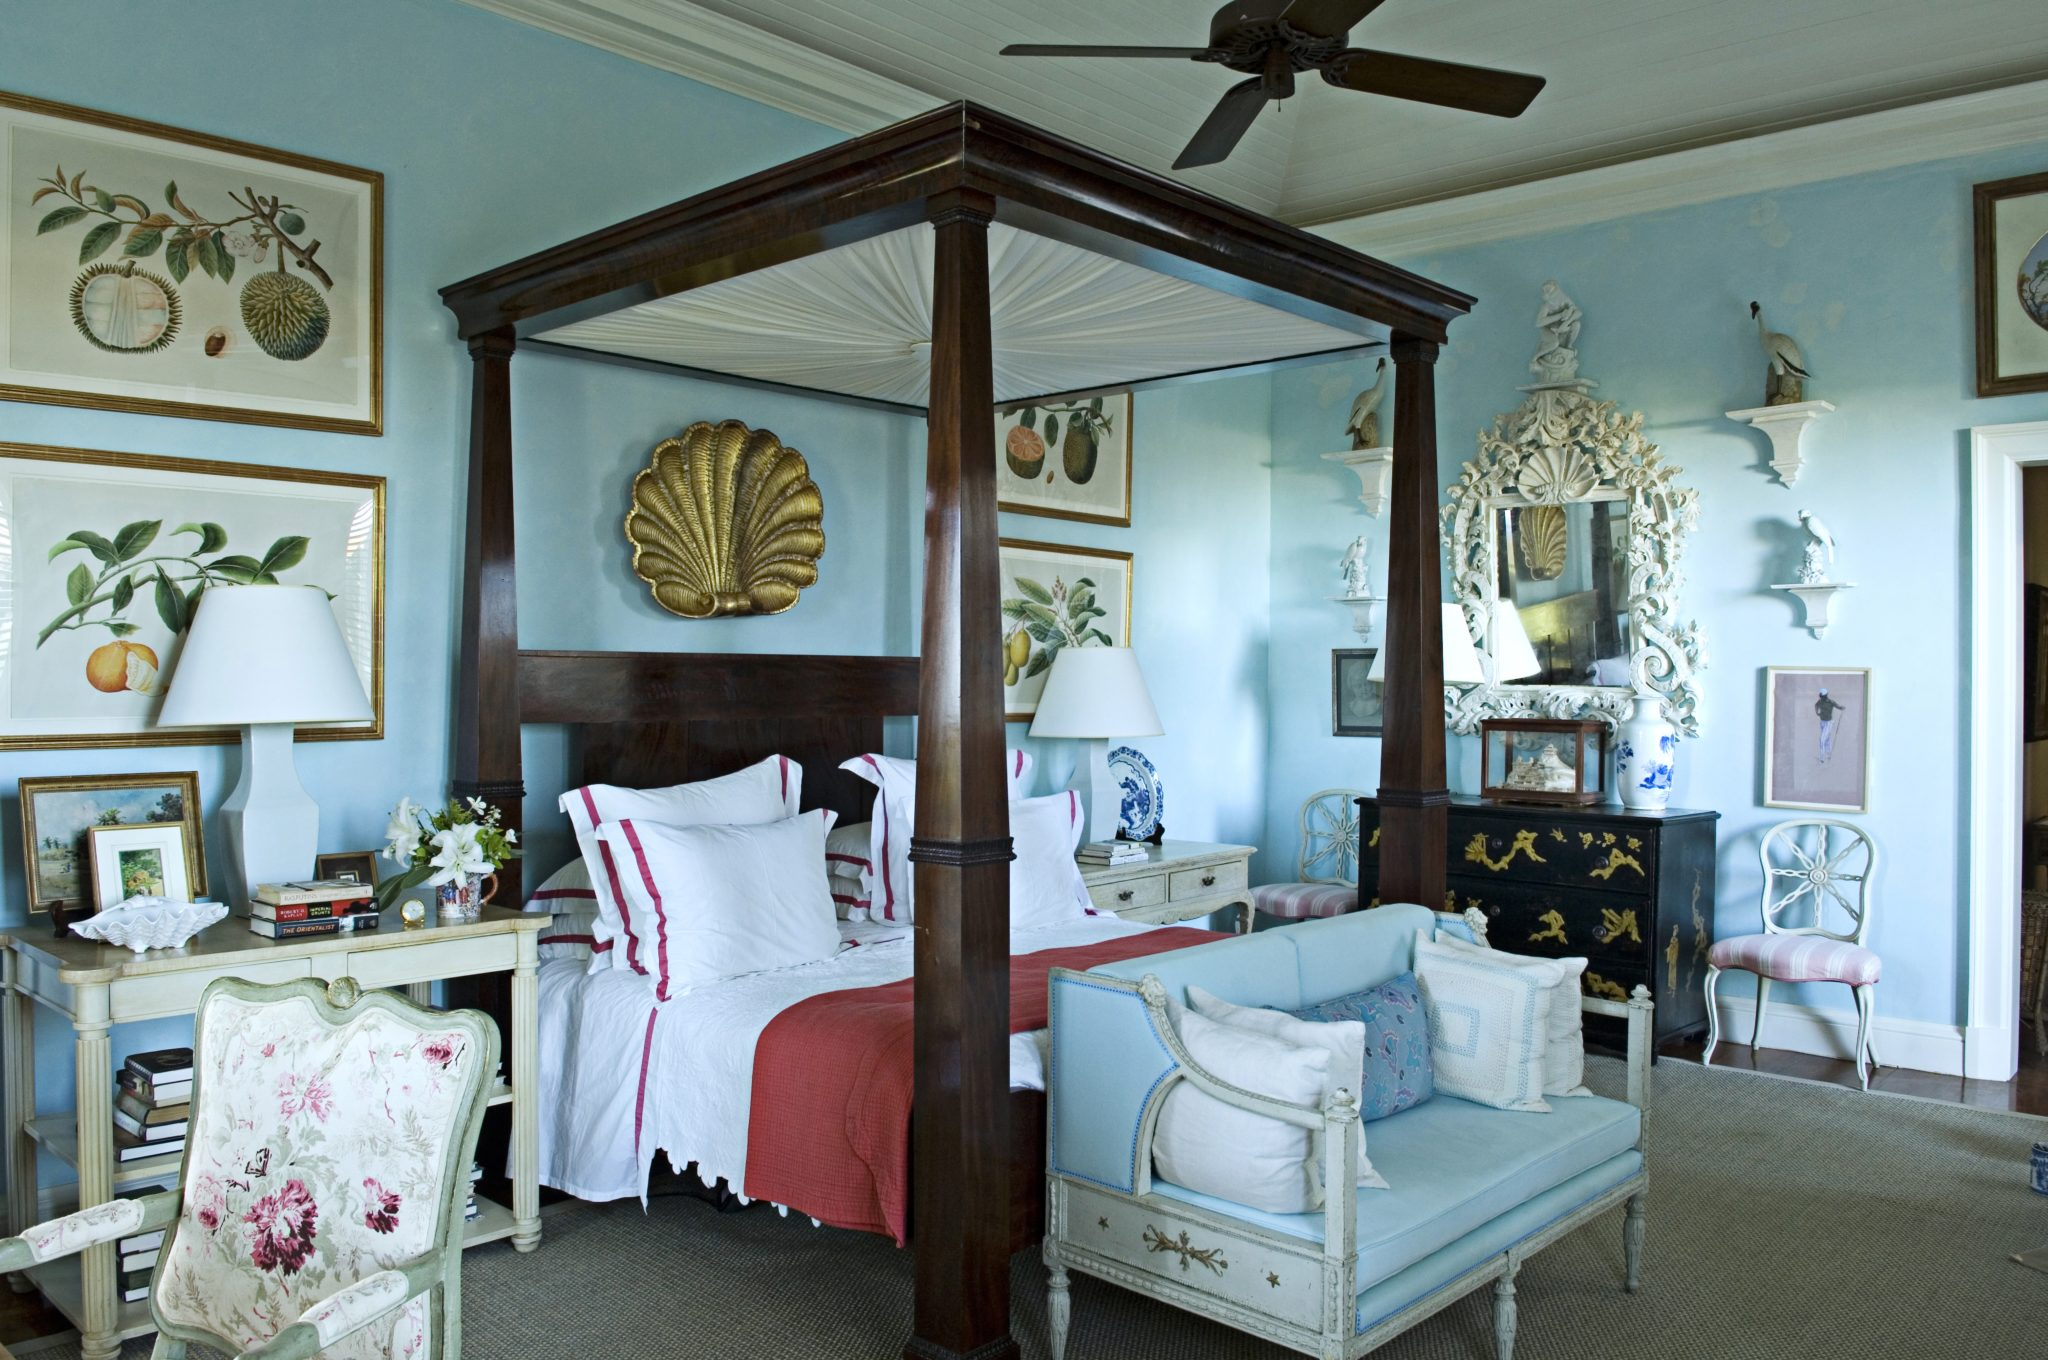 A vivid turquoise Venetian plaster is used on the walls of this tropical bedroom by Bunny Williams Inc.